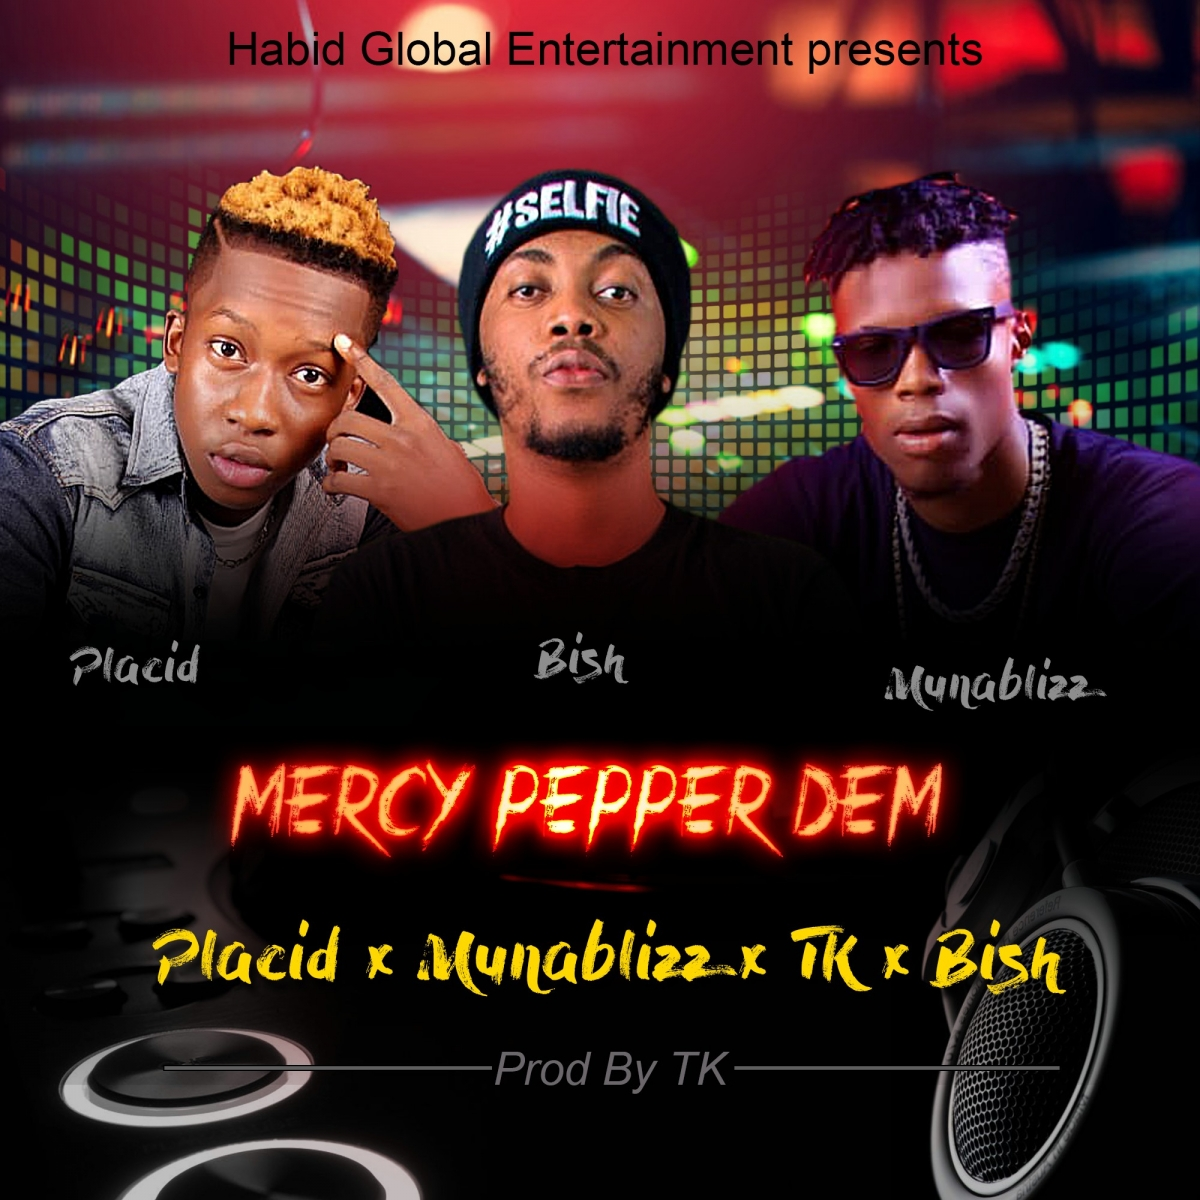 Placid x Munablizz x TK x Bish - Mercy Pepper Dem